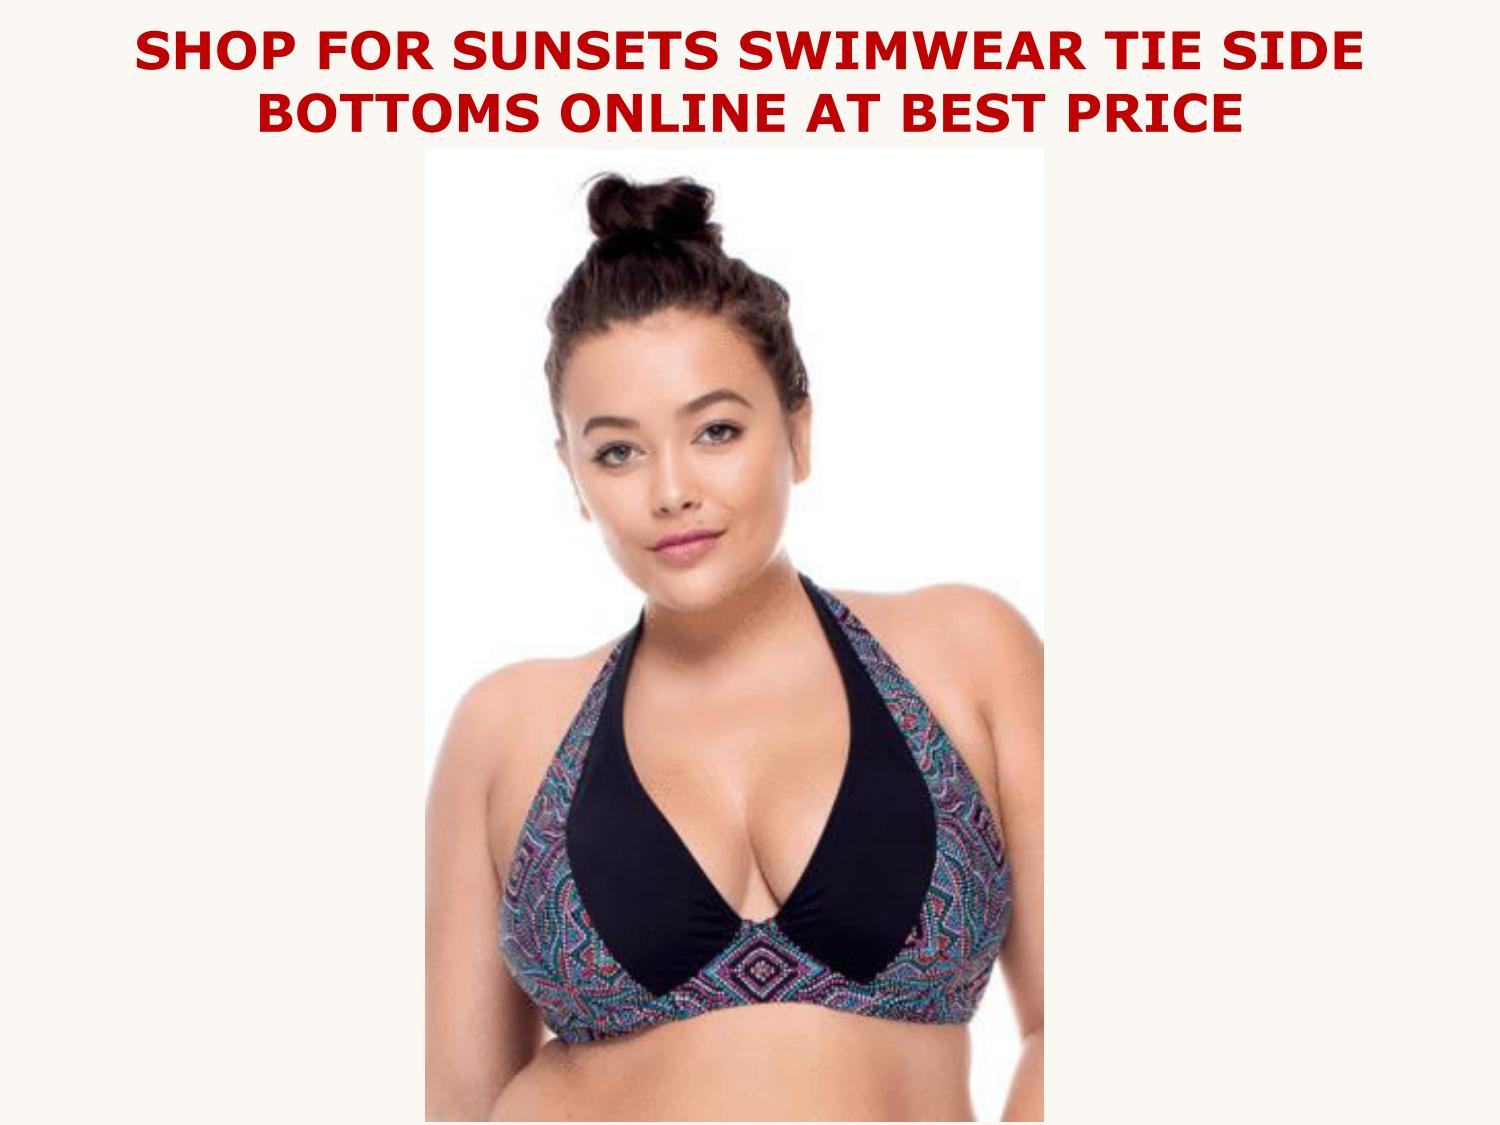 d146c9d866 Get All New Collection of Aerin Rose Swimwear at Discounted Price ...